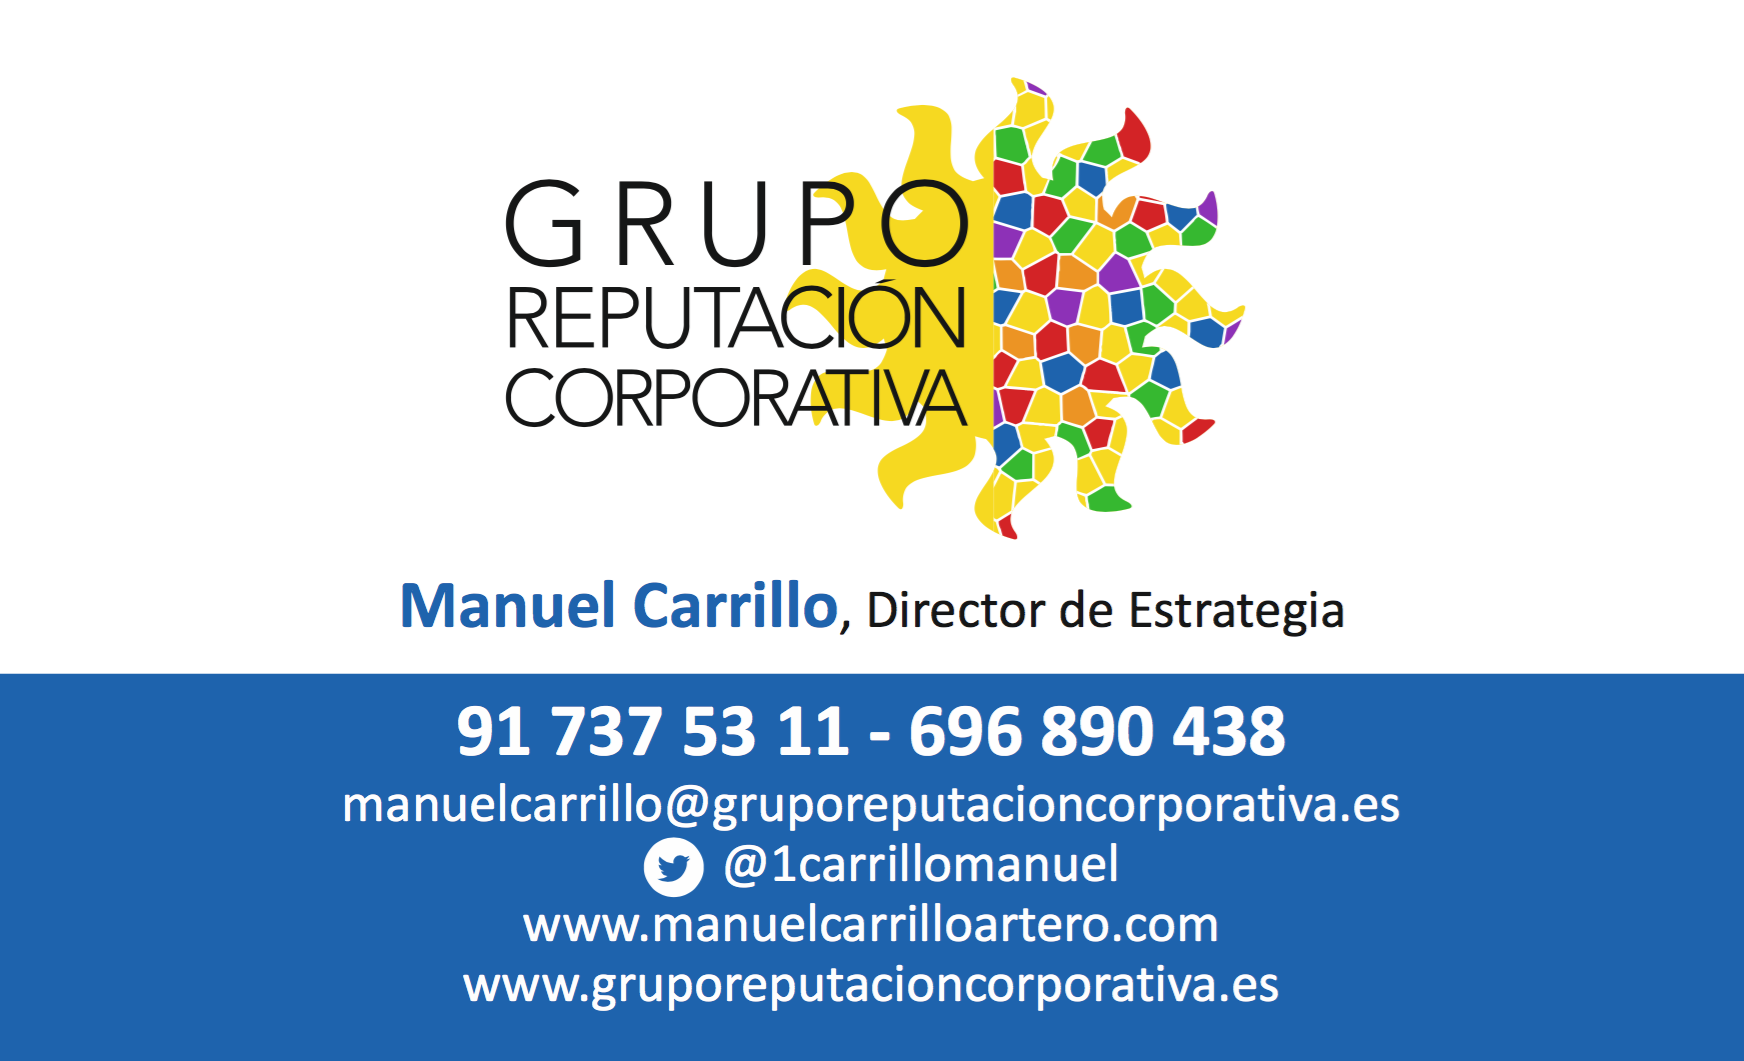 Datos contacto Manuel Carrillo